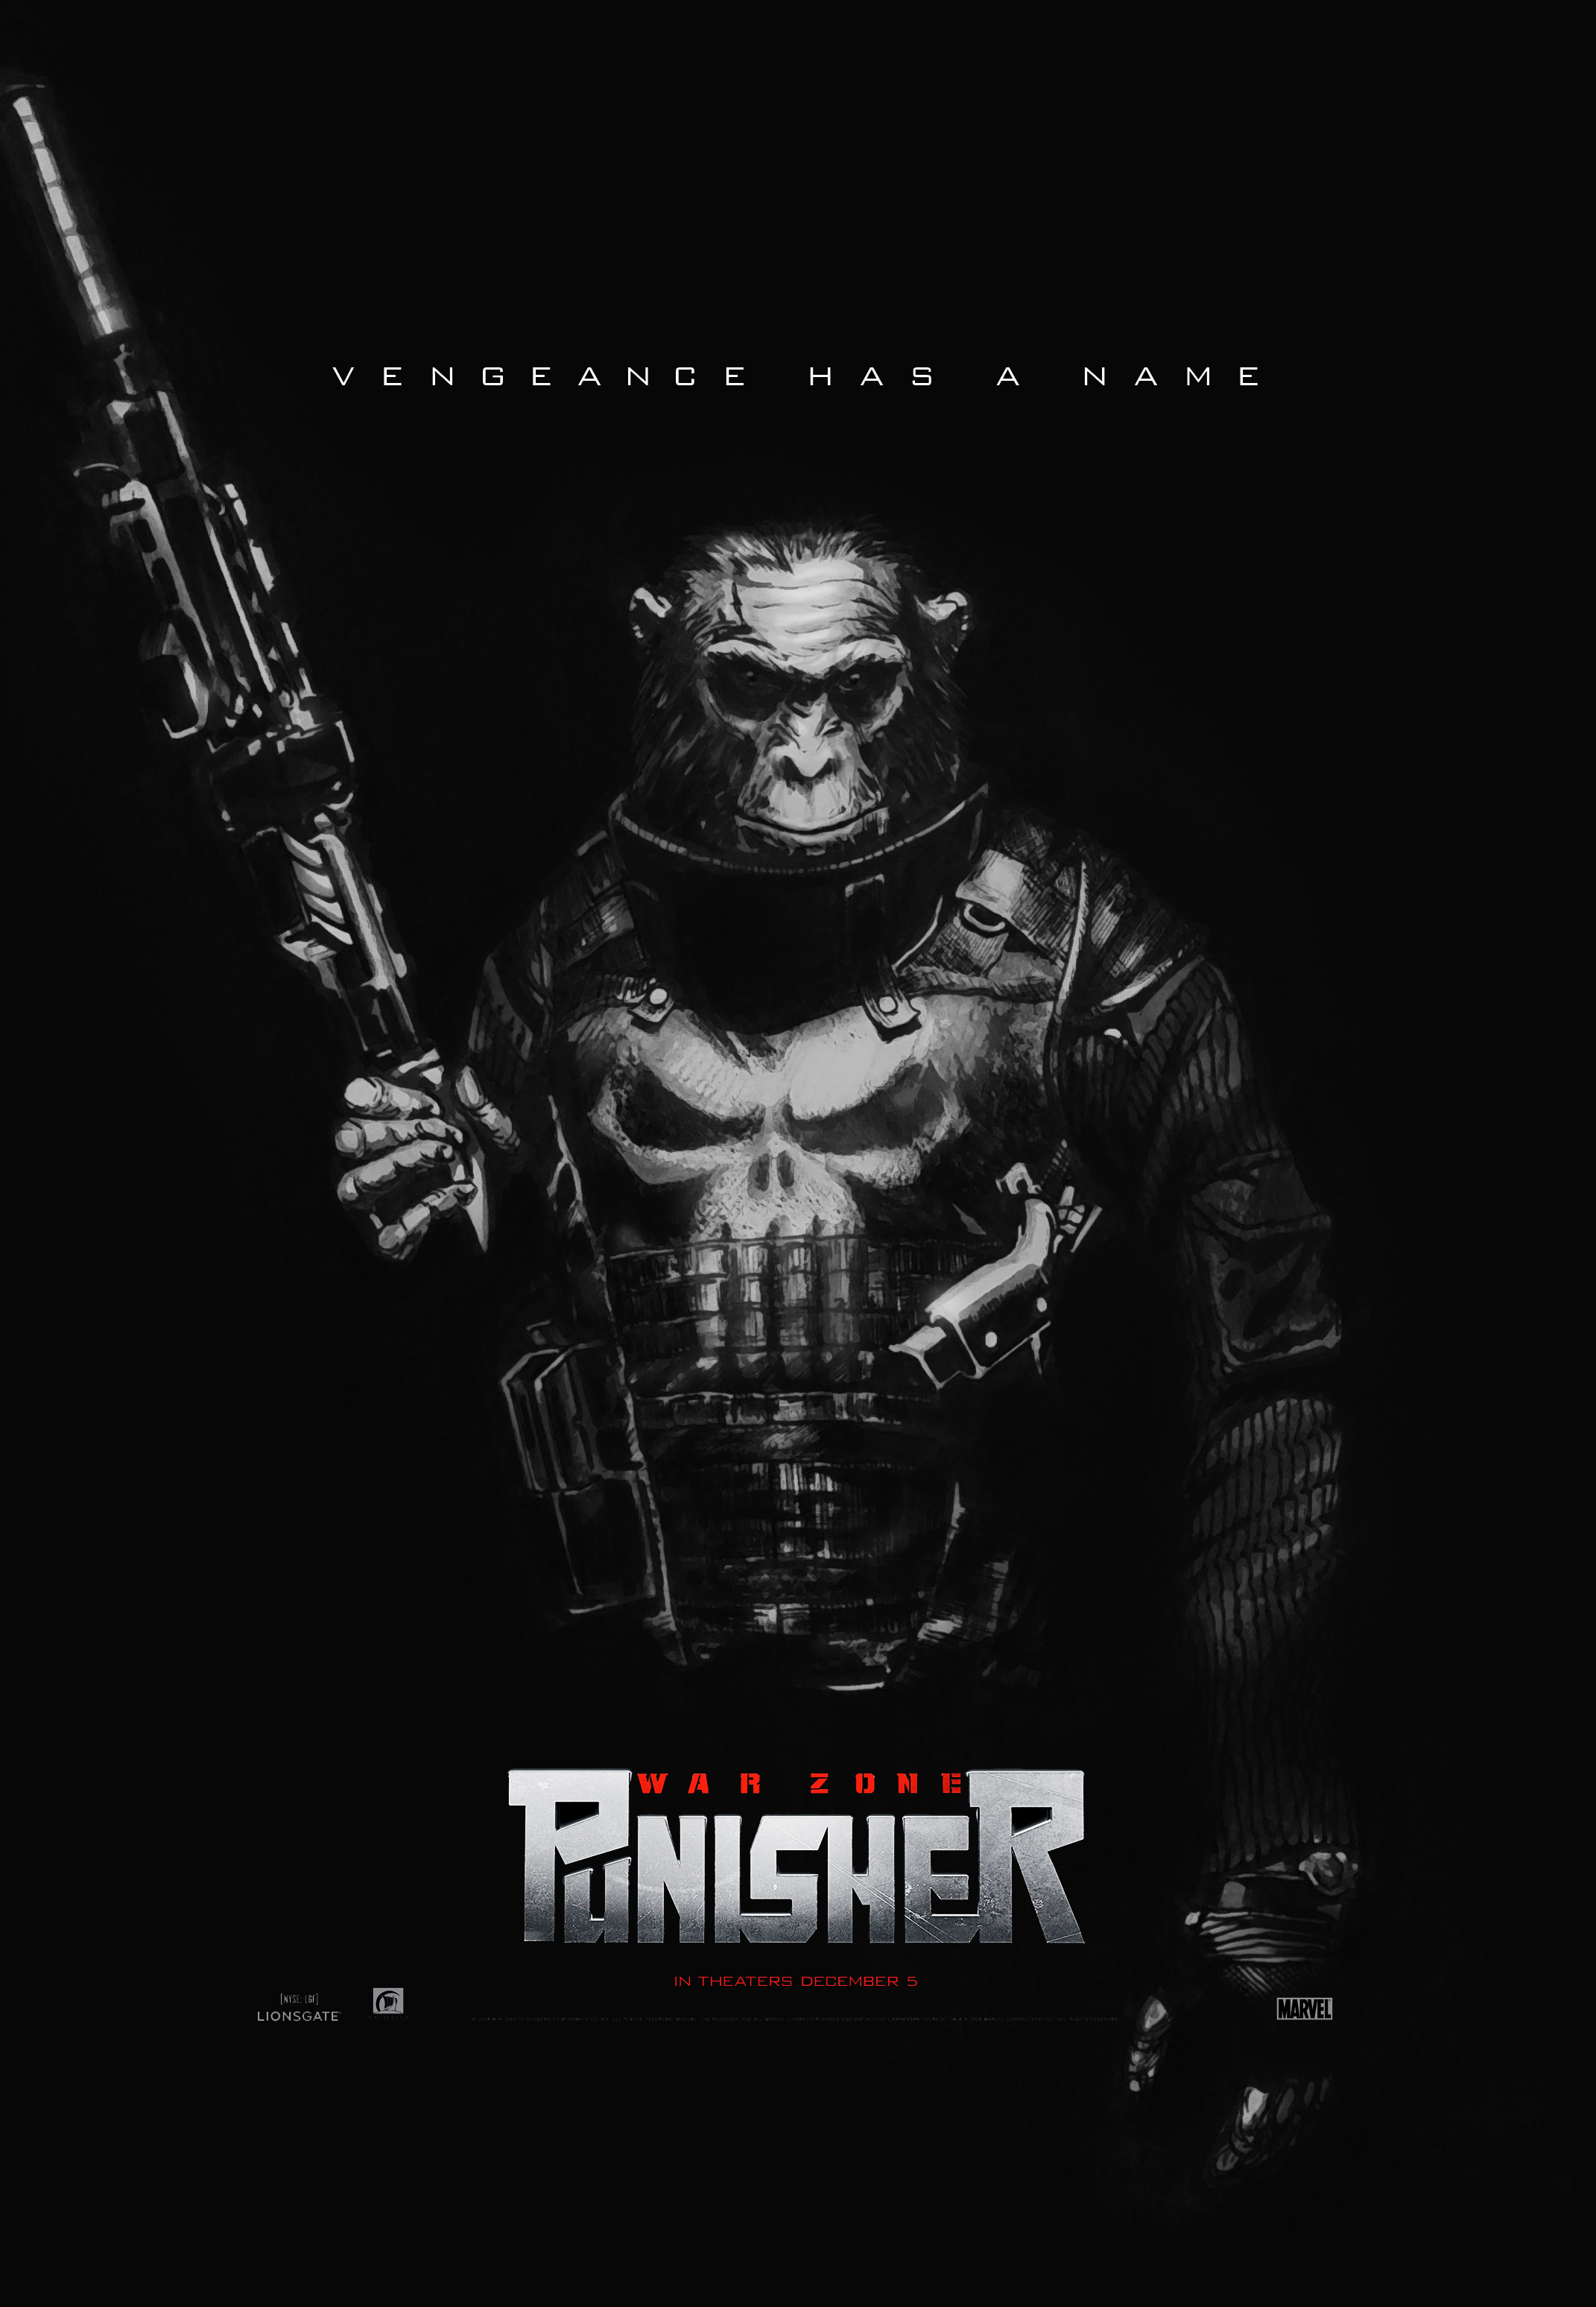 If the punisher was an ape